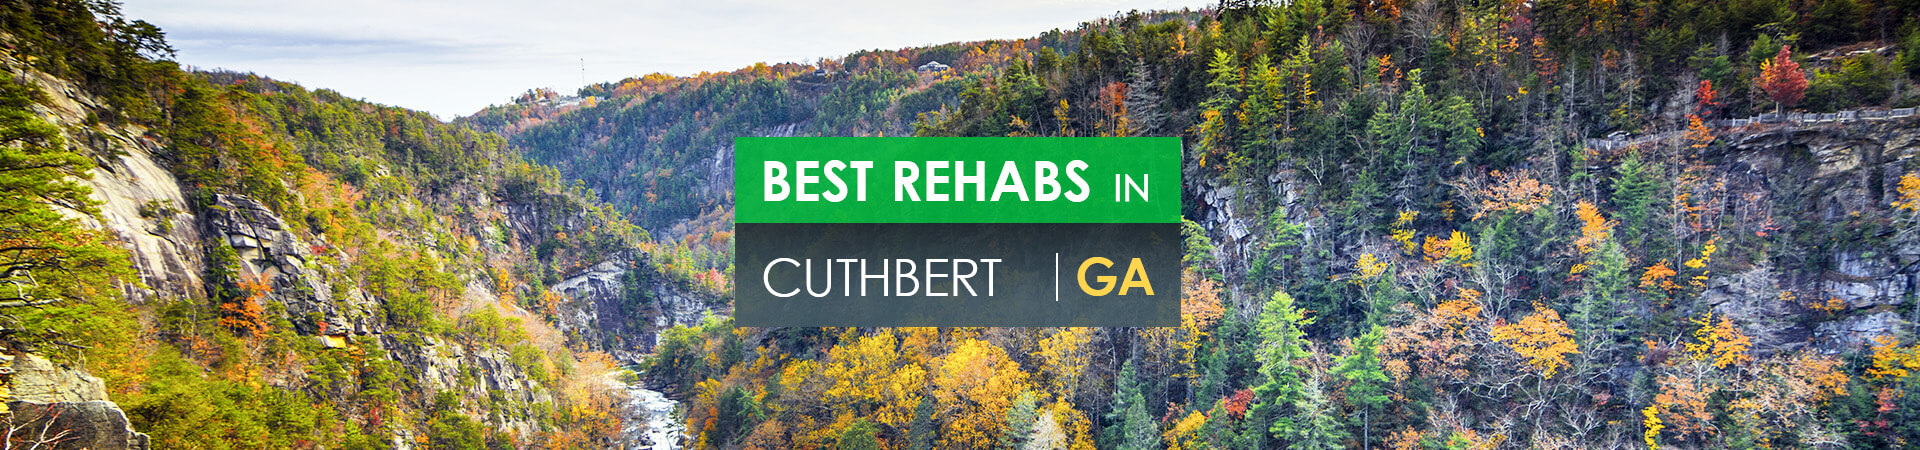 Best rehabs in Cuthbert, GA